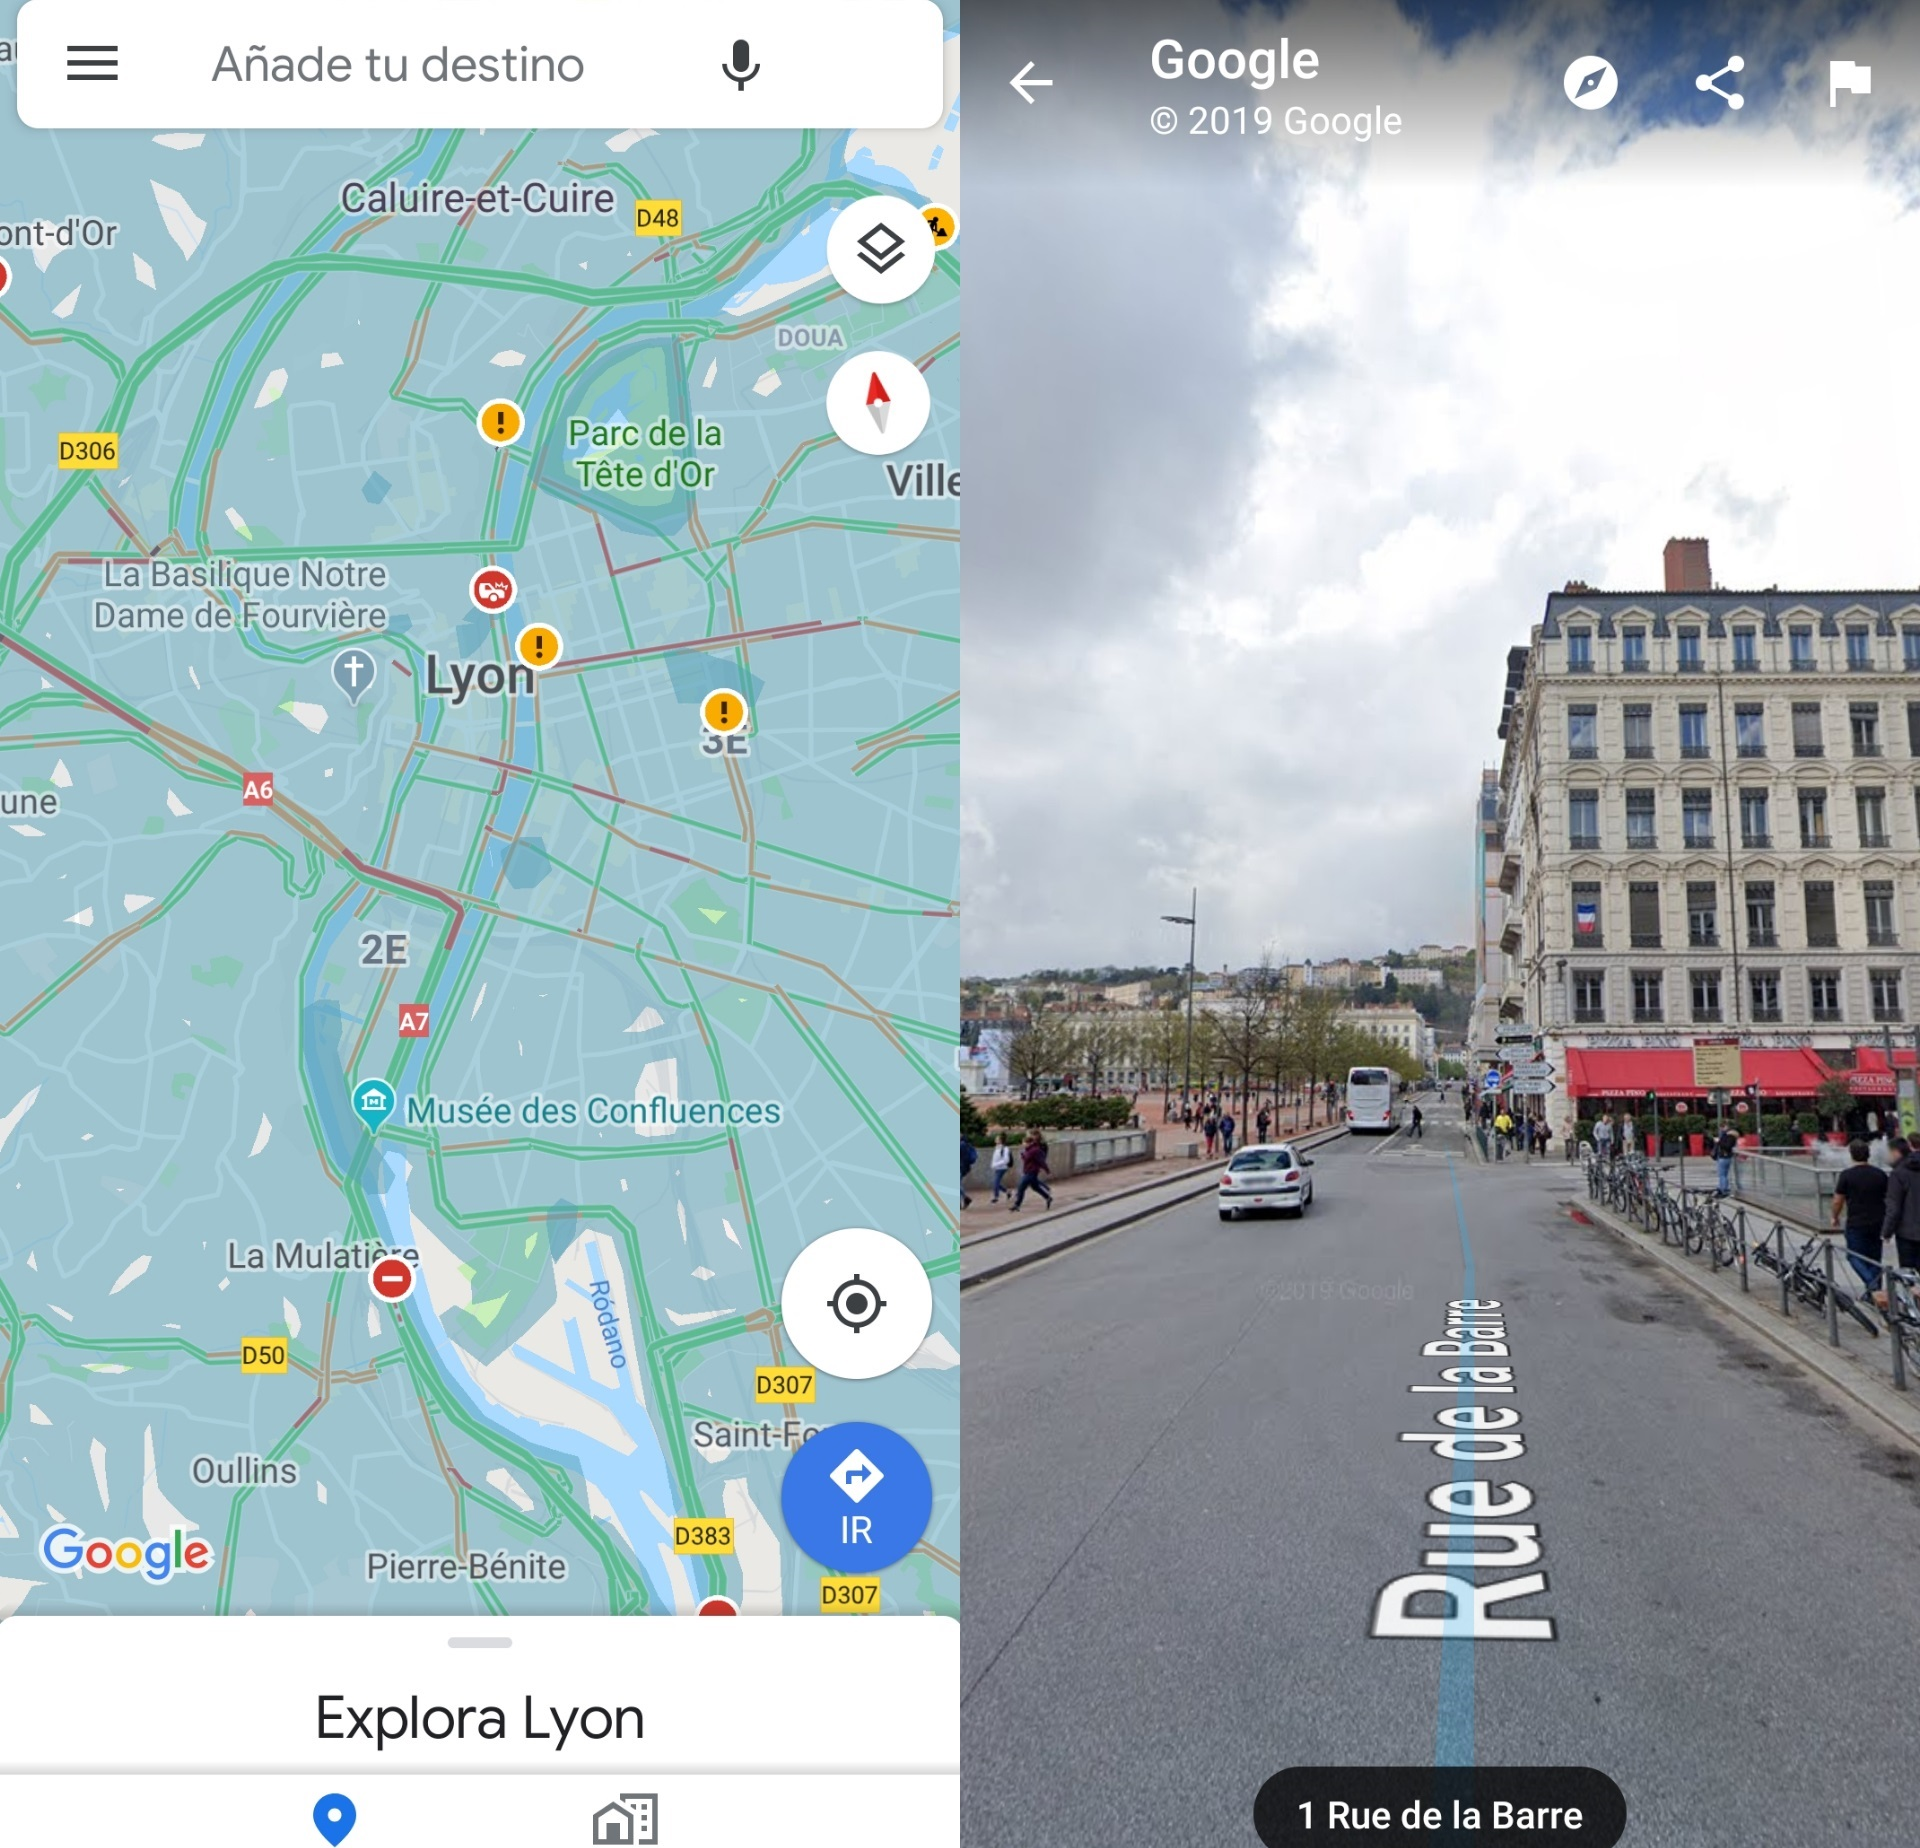 Street View En Google Maps